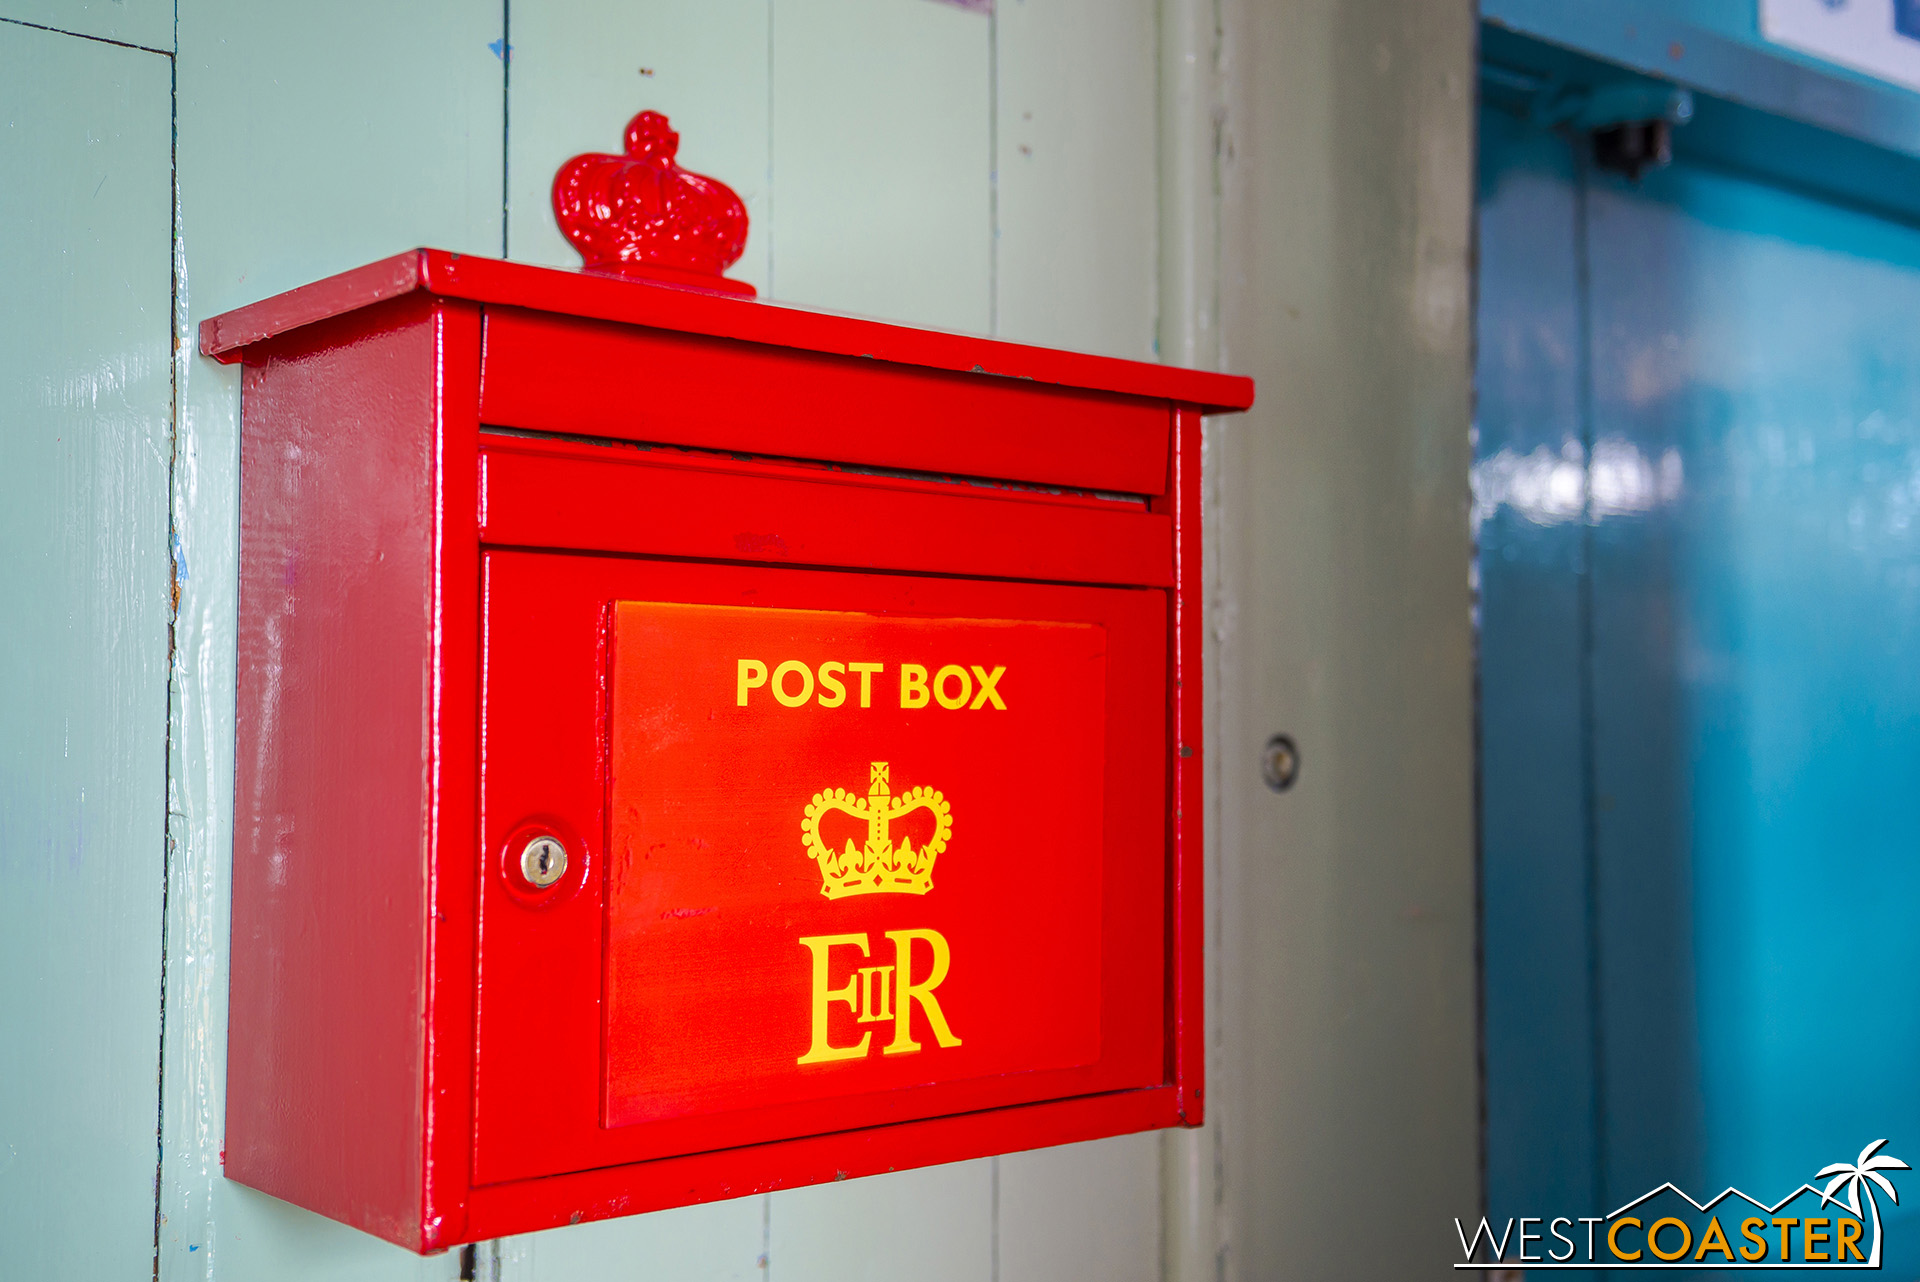 Yes, this is a functional post box. Port Lockroy processes 70,000 pieces of mail each year from Antarctic tourists.